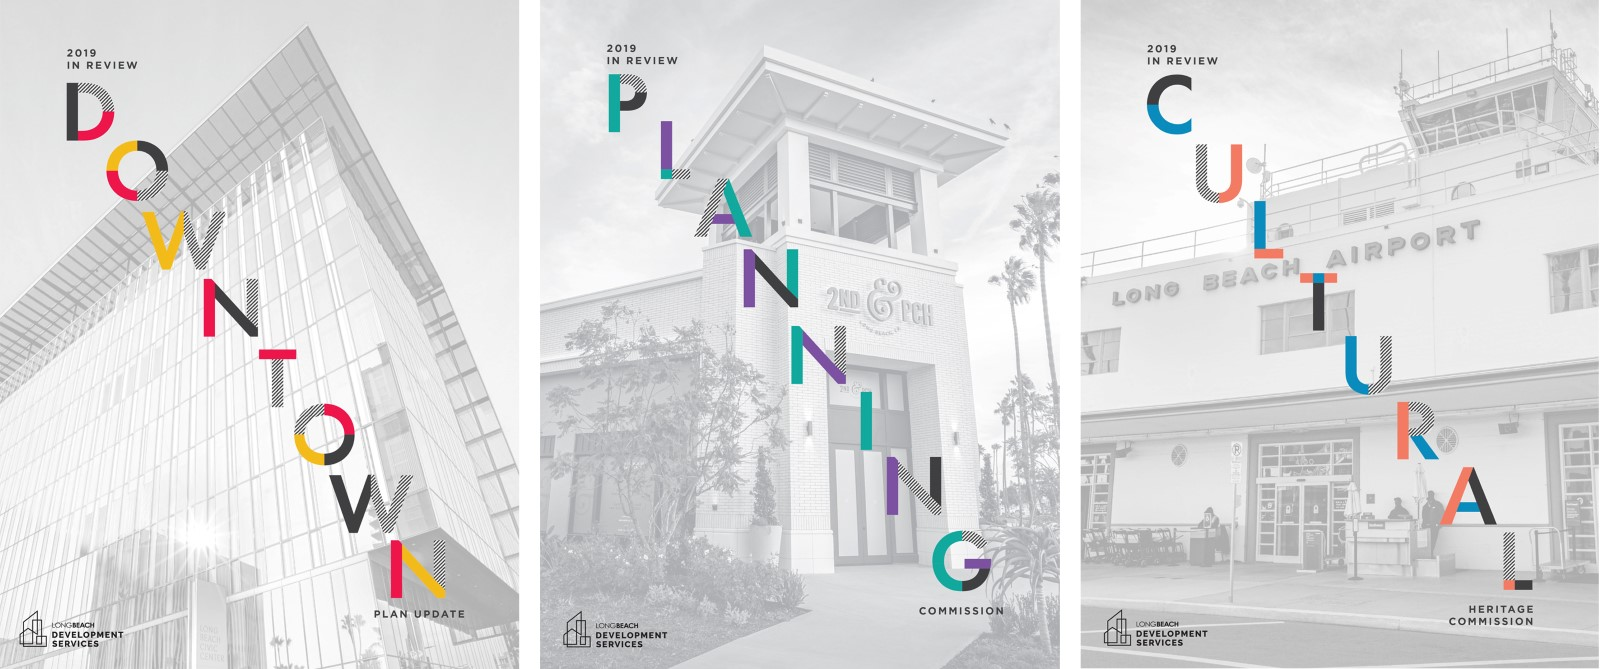 2019 Annual Reports 3 covers